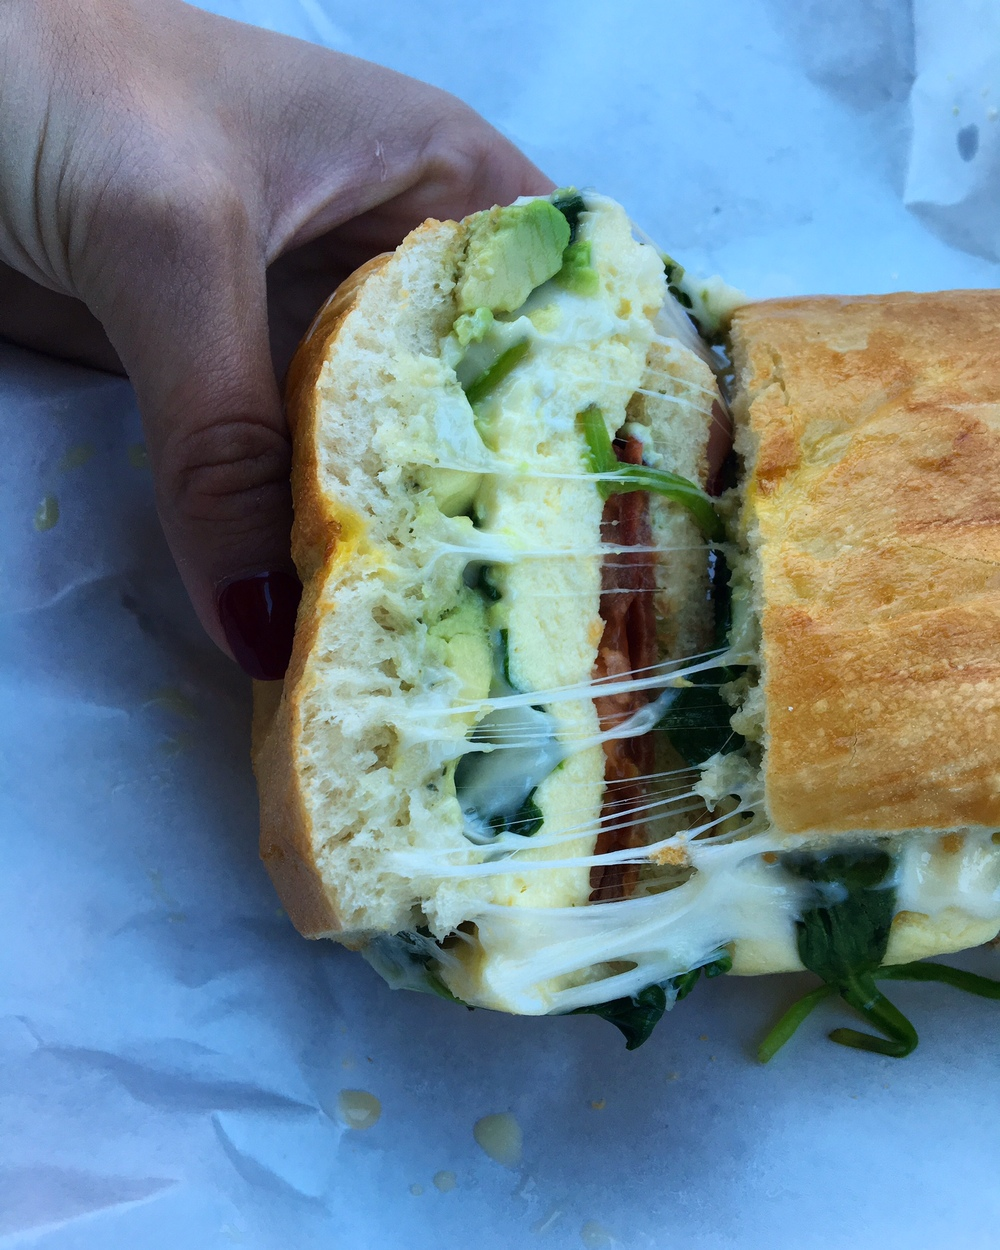 The Red Scooter Deli sits across from the park in Downtown Paso Robles. Their sandwiches are a great to-go option before hitting the road or picnicking.